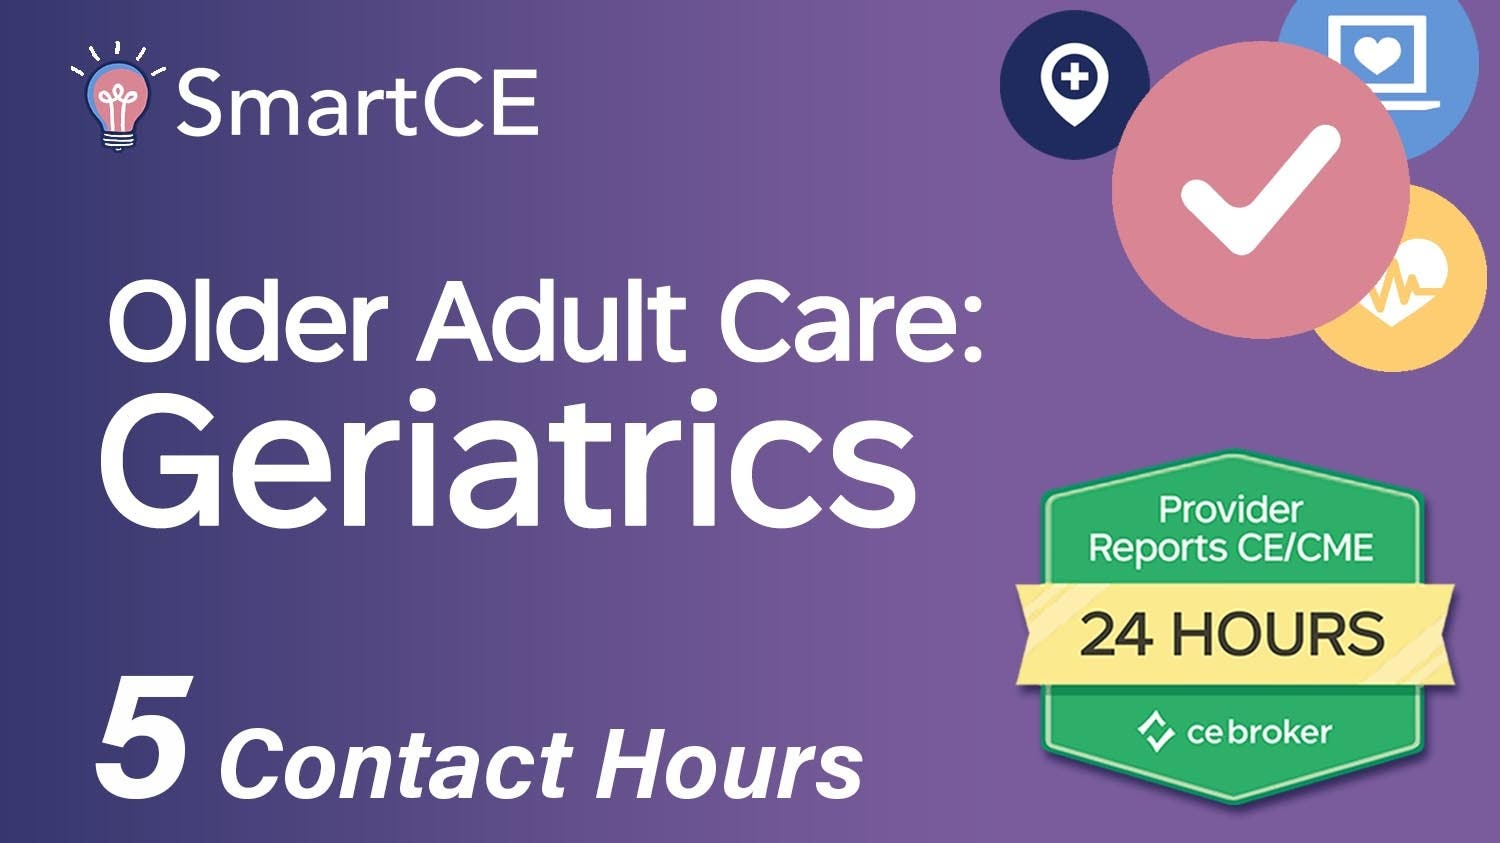 Older Adult Care: Geriatrics - 5 Contact Hours/ 20-684905